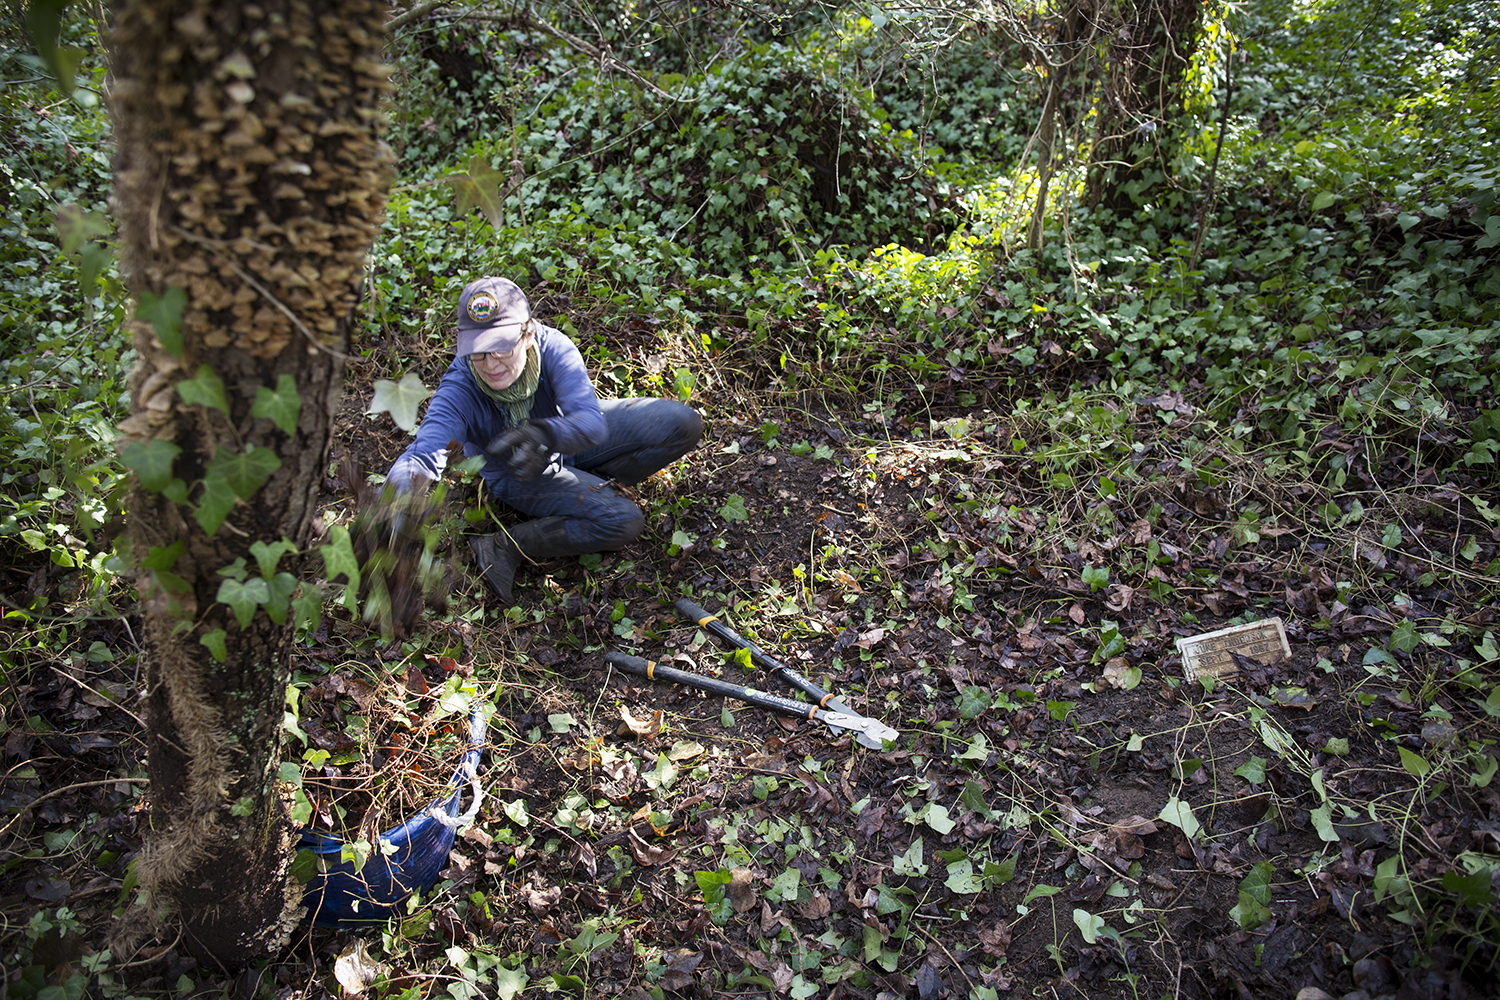 Erin clears invasive plants and vinesfrom graves,East End Cemetery work day, January 2015.©brianpalmer.photos 2015